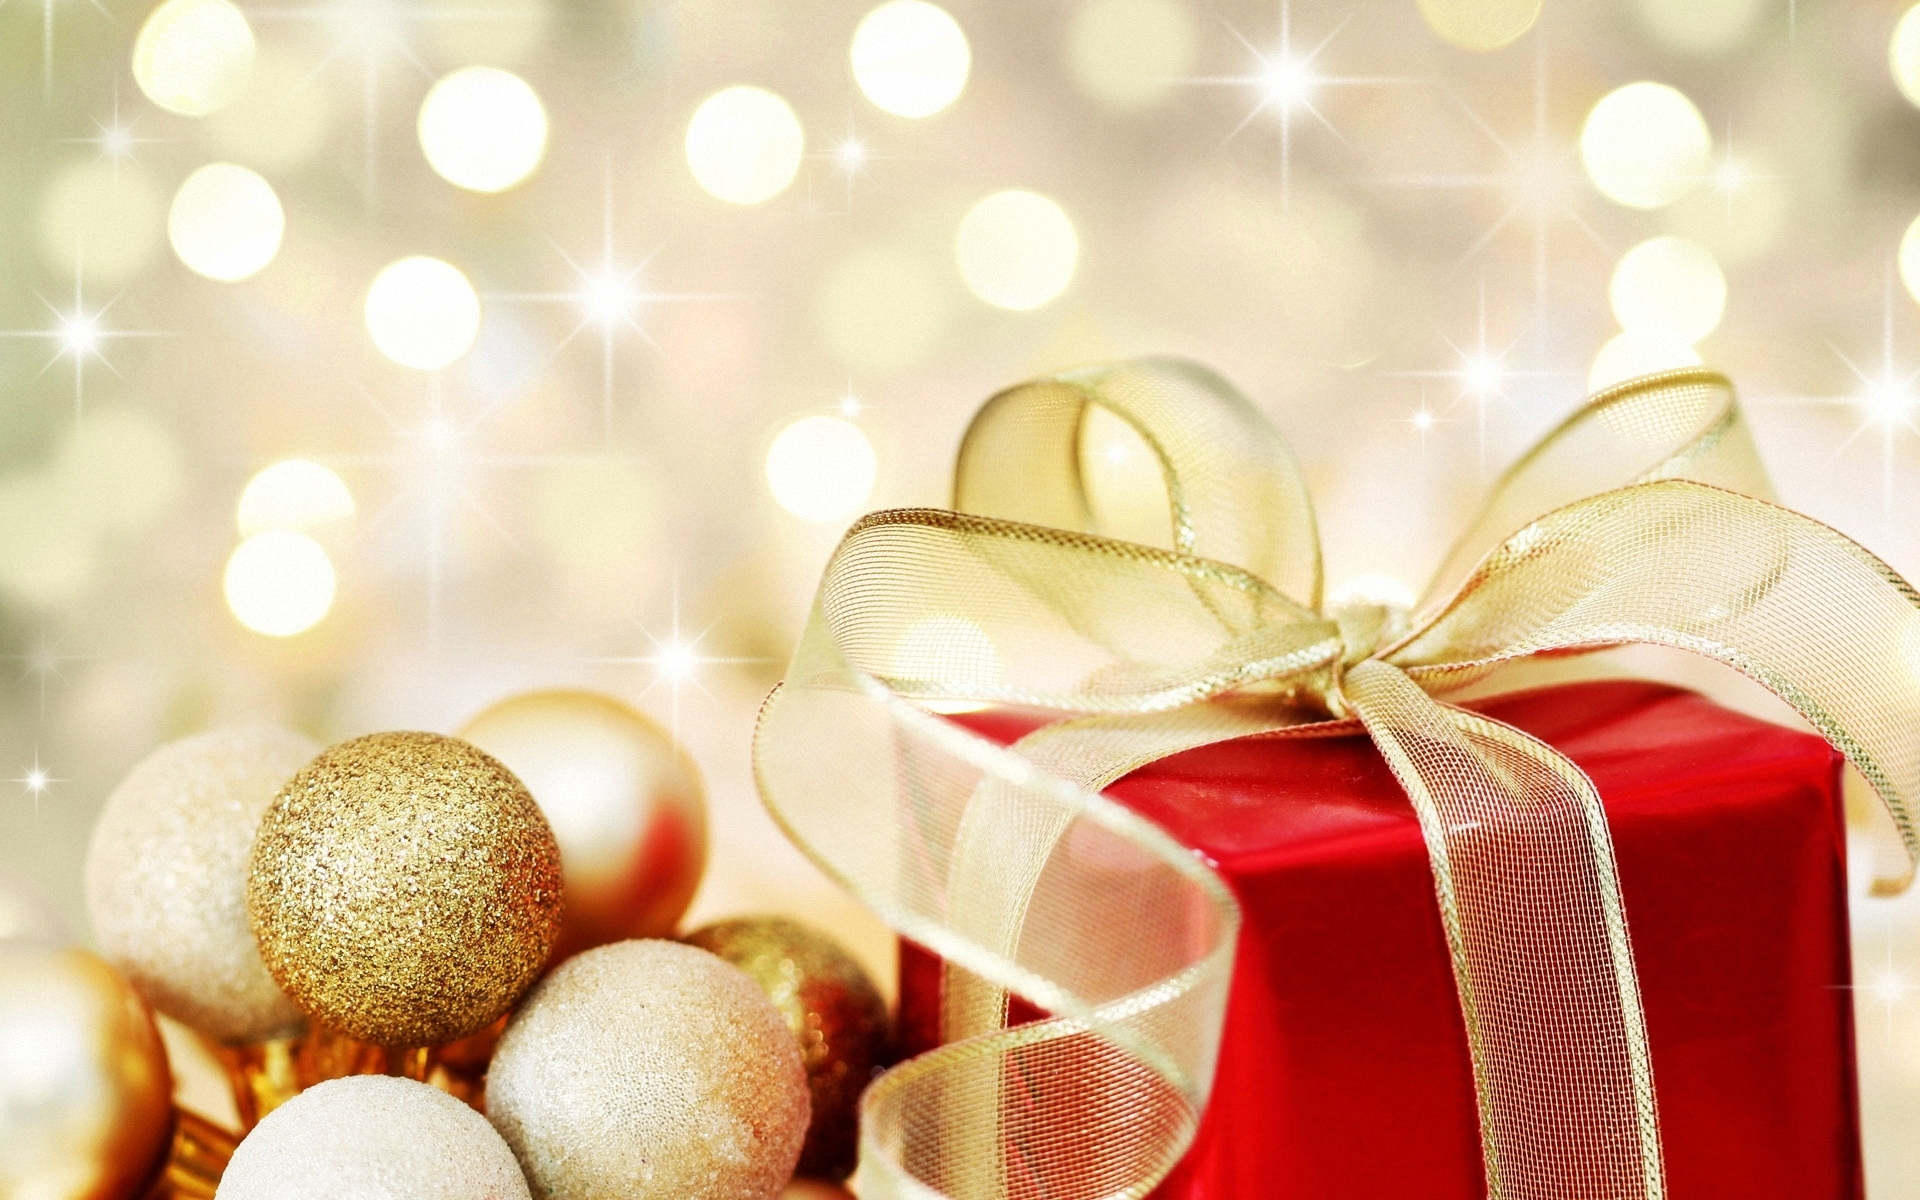 https://i1.wp.com/images4.fanpop.com/image/photos/22200000/Golden-Christmas-ornaments-christmas-22229803-1920-1200.jpg